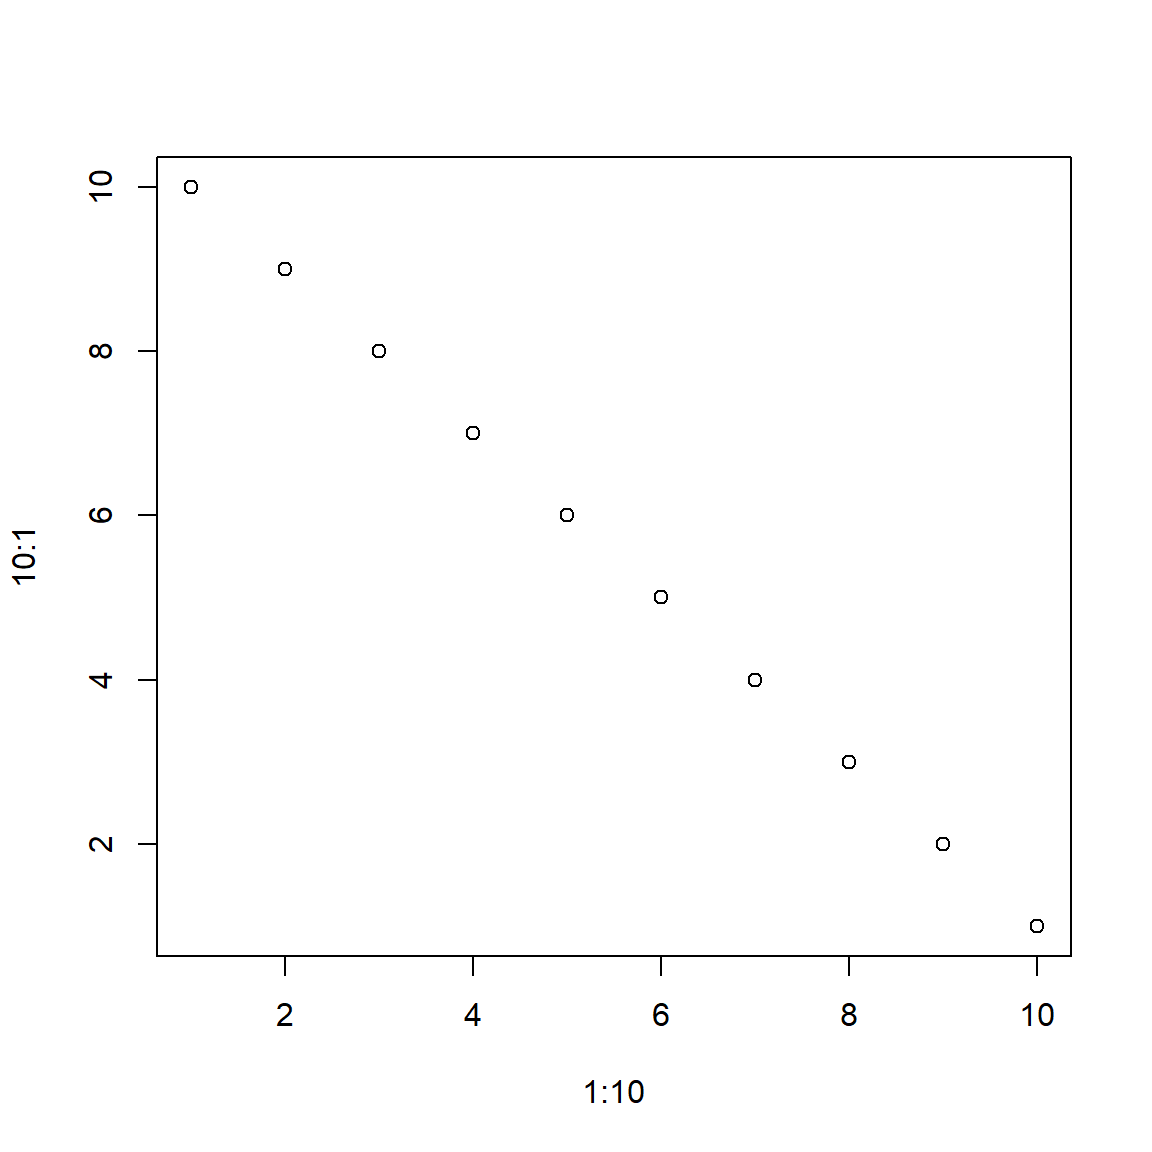 Test post for checking website | LIBD rstats club